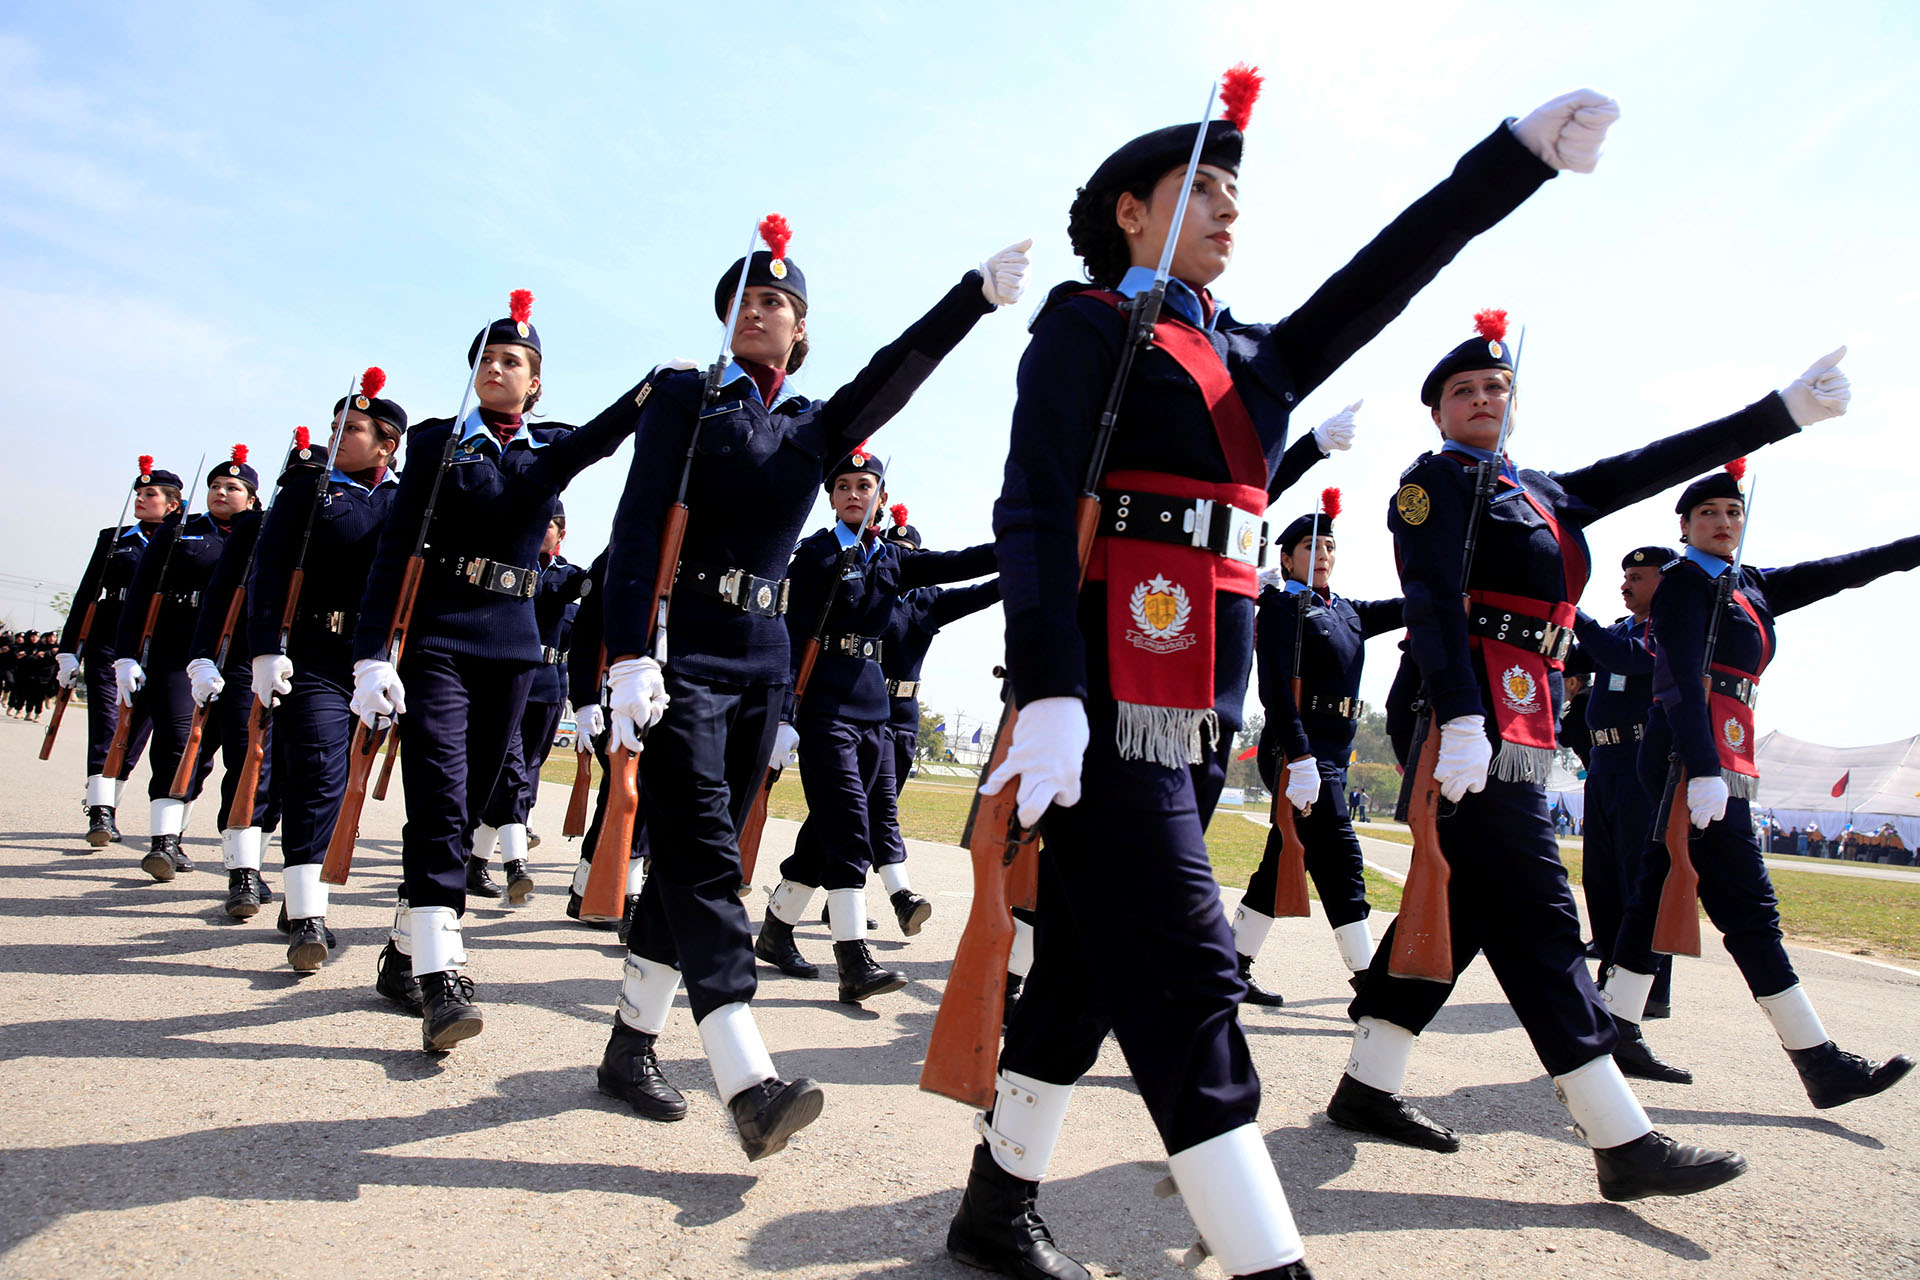 Female members of police forces march during a ceremony on International Women's Day, at the police headquarters in Islamabad